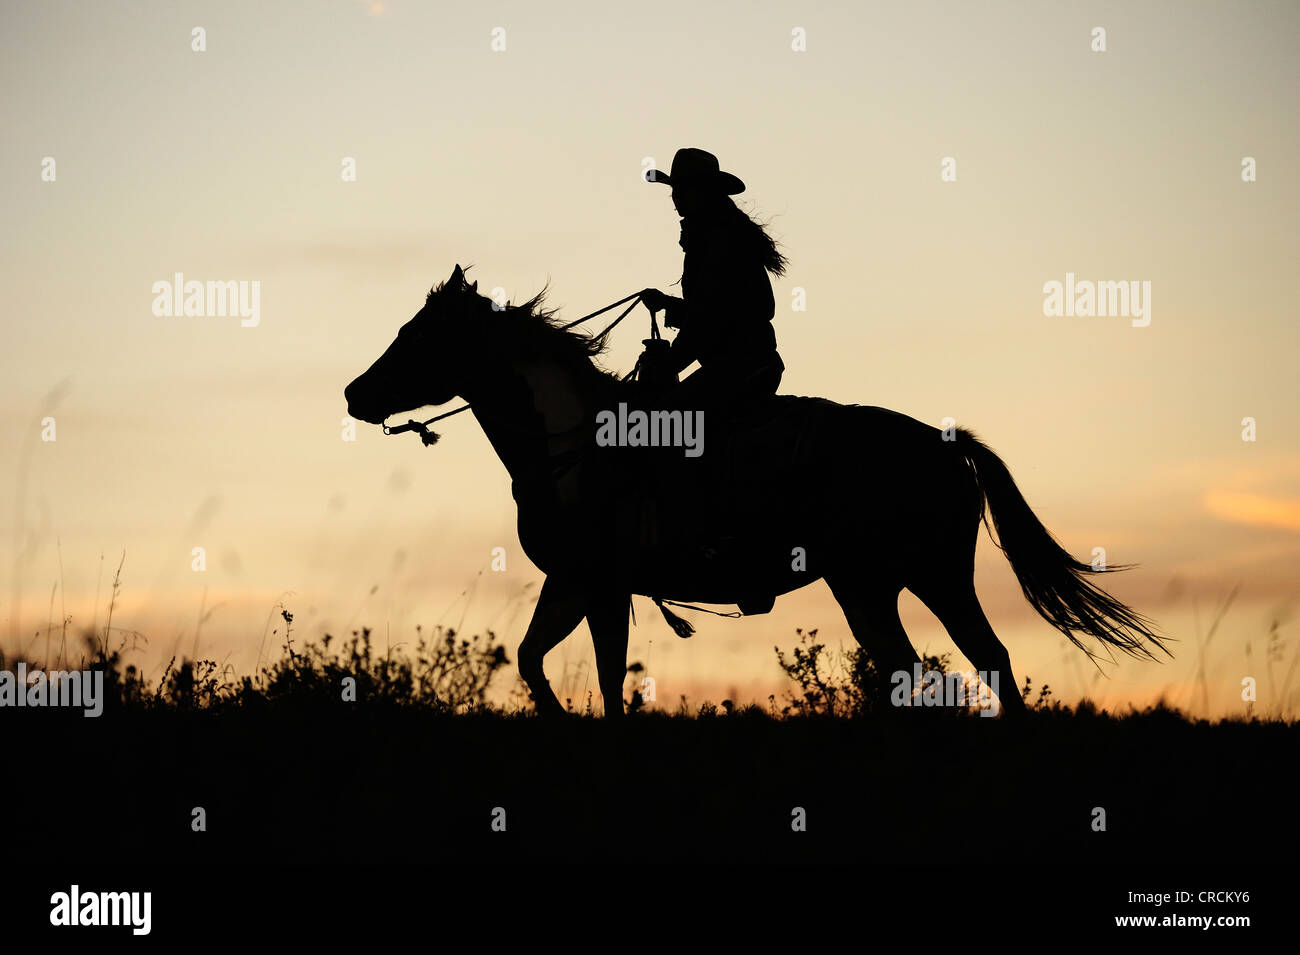 Cowgirl And Horse Silhouette High Resolution Stock Photography And Images Alamy